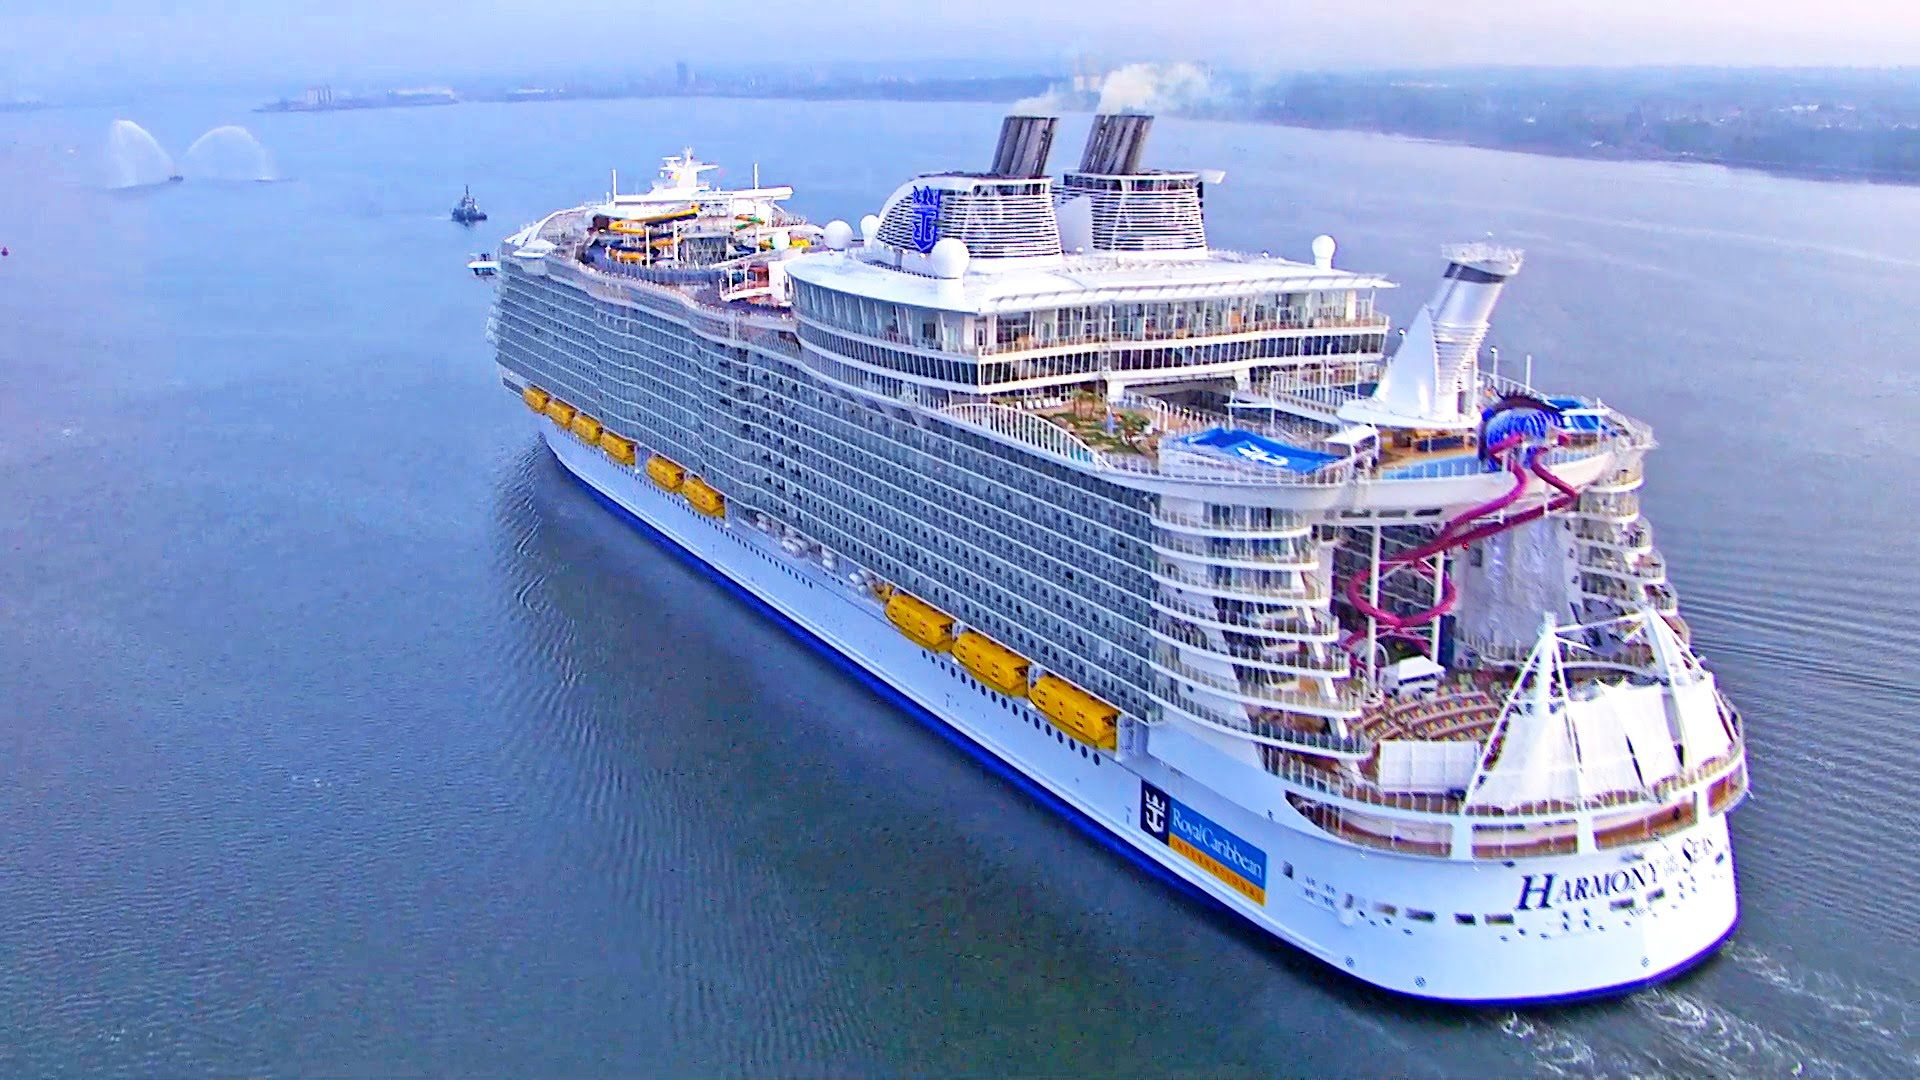 Explore The Beauty Of Caribbean: Harmony Of The Seas Inside Of